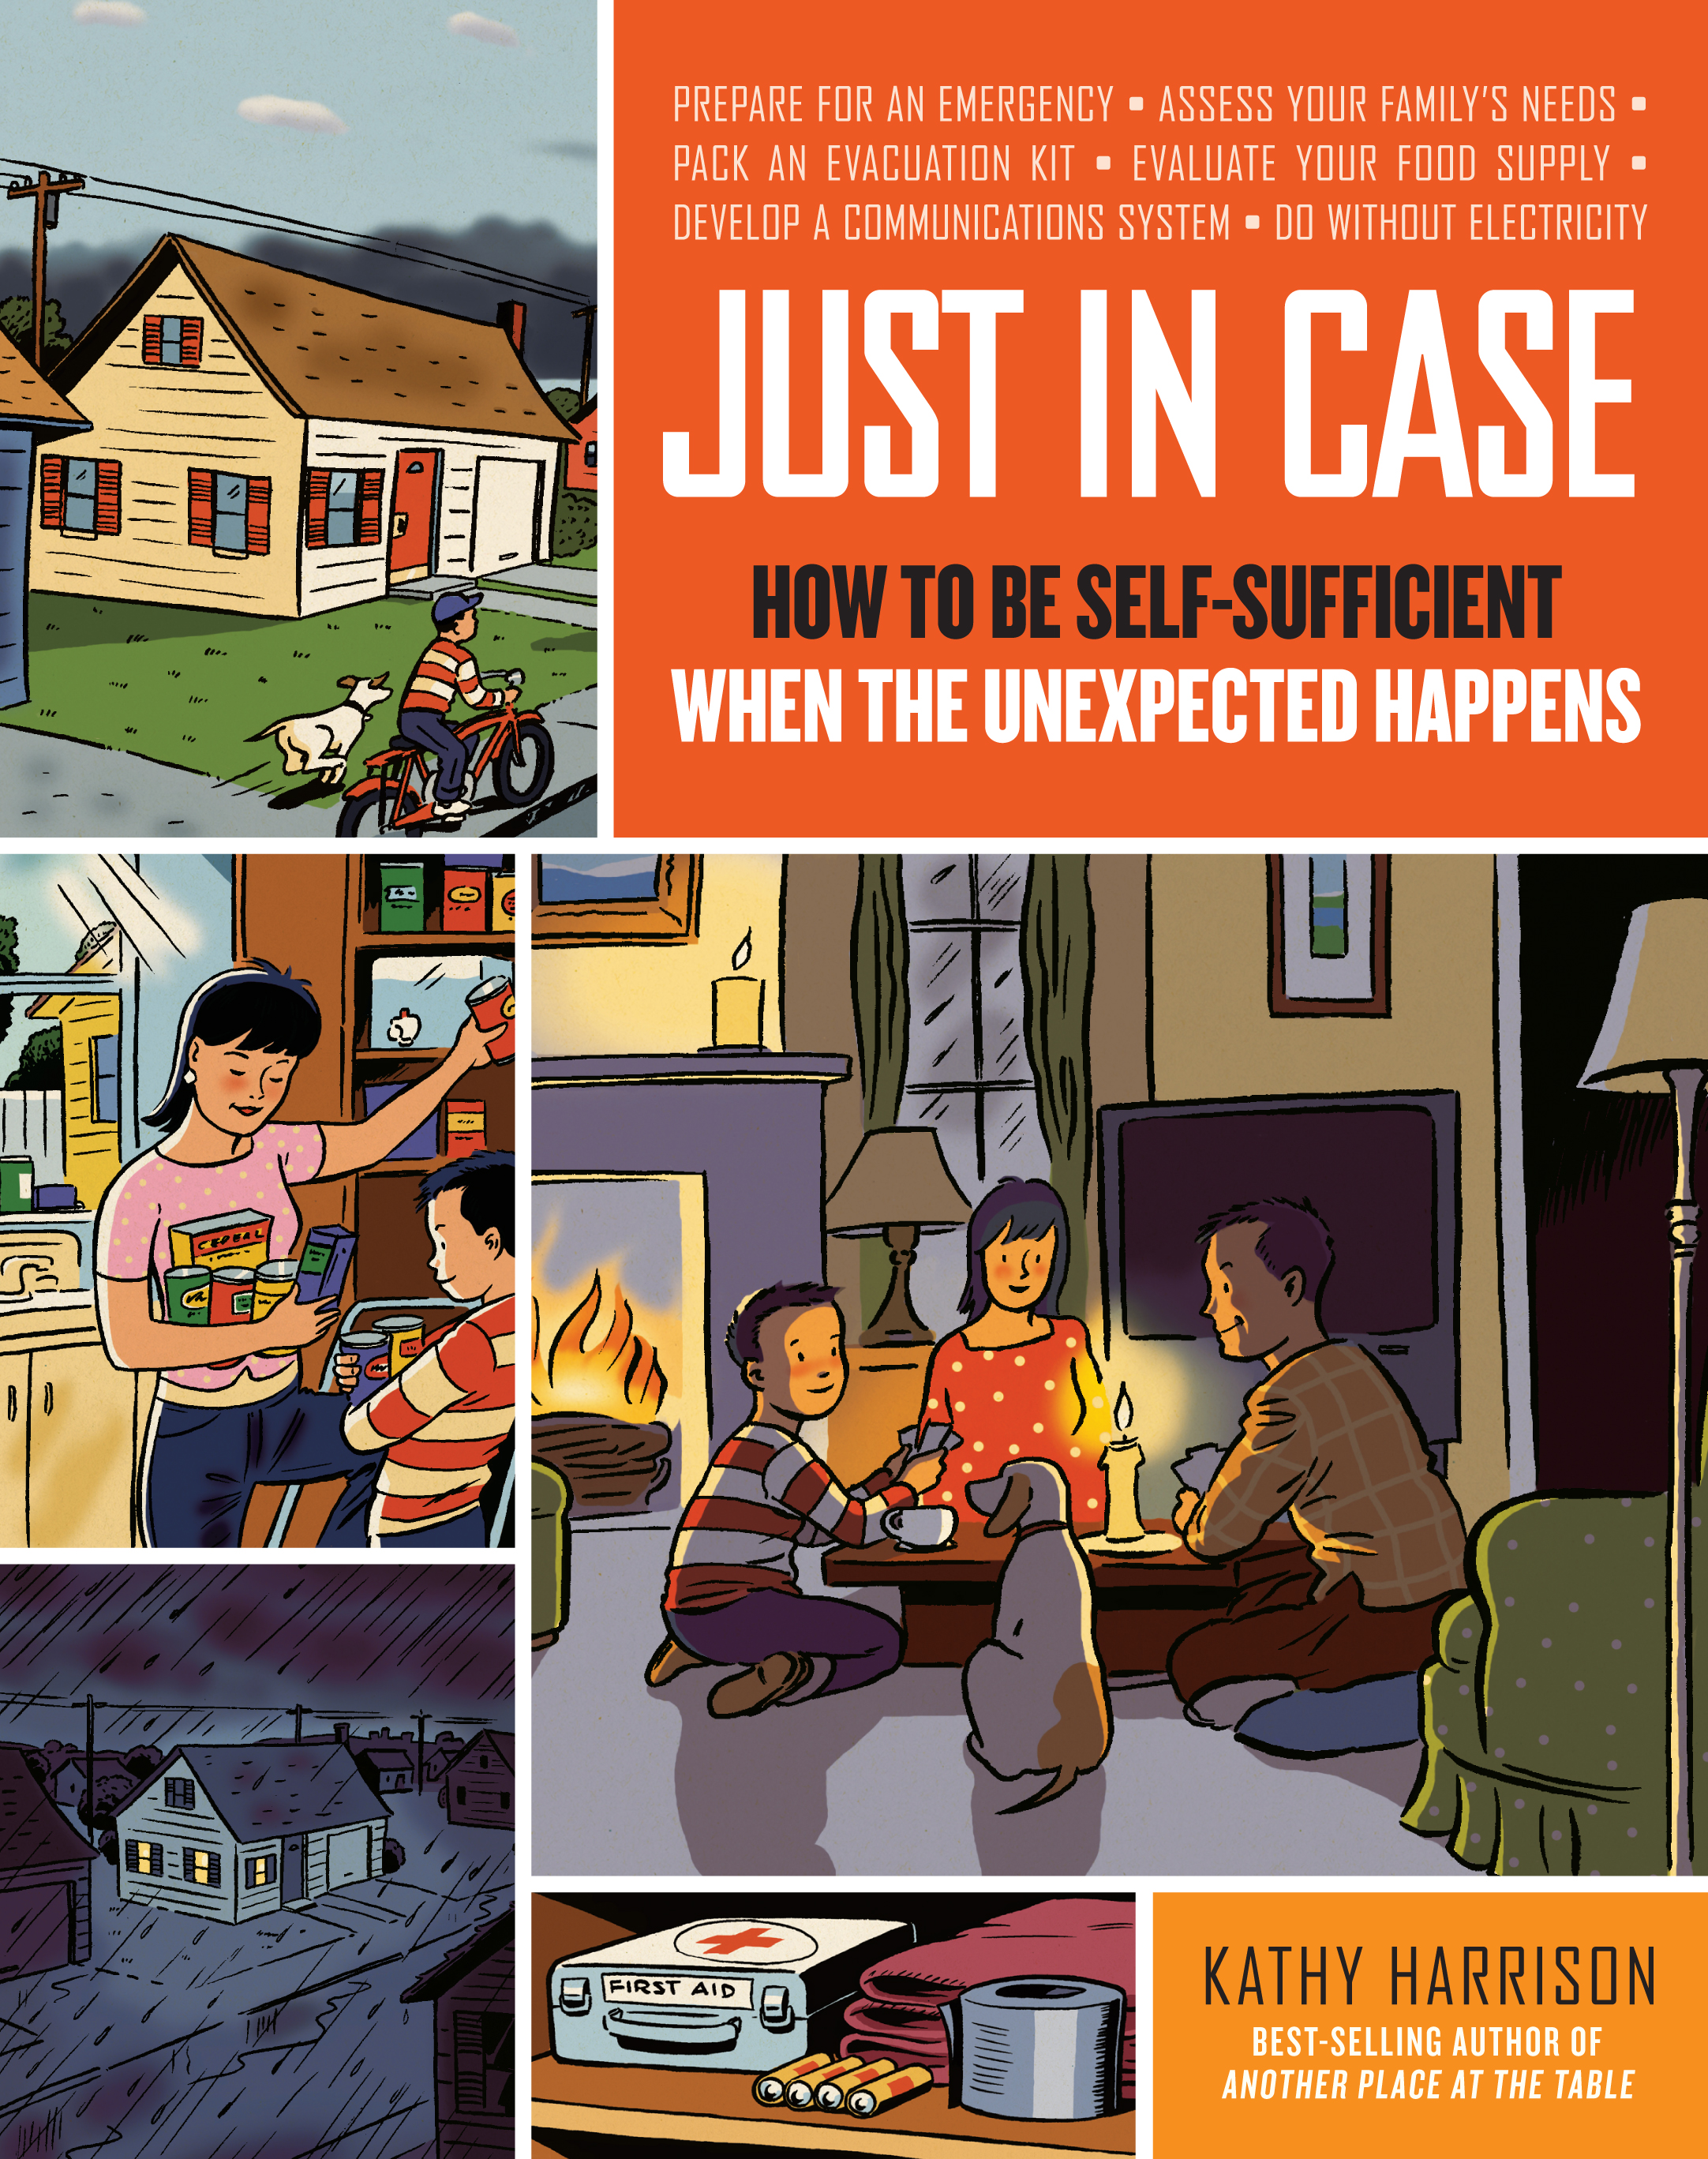 Just in Case How to Be Self-Sufficient When the Unexpected Happens - Kathy Harrison